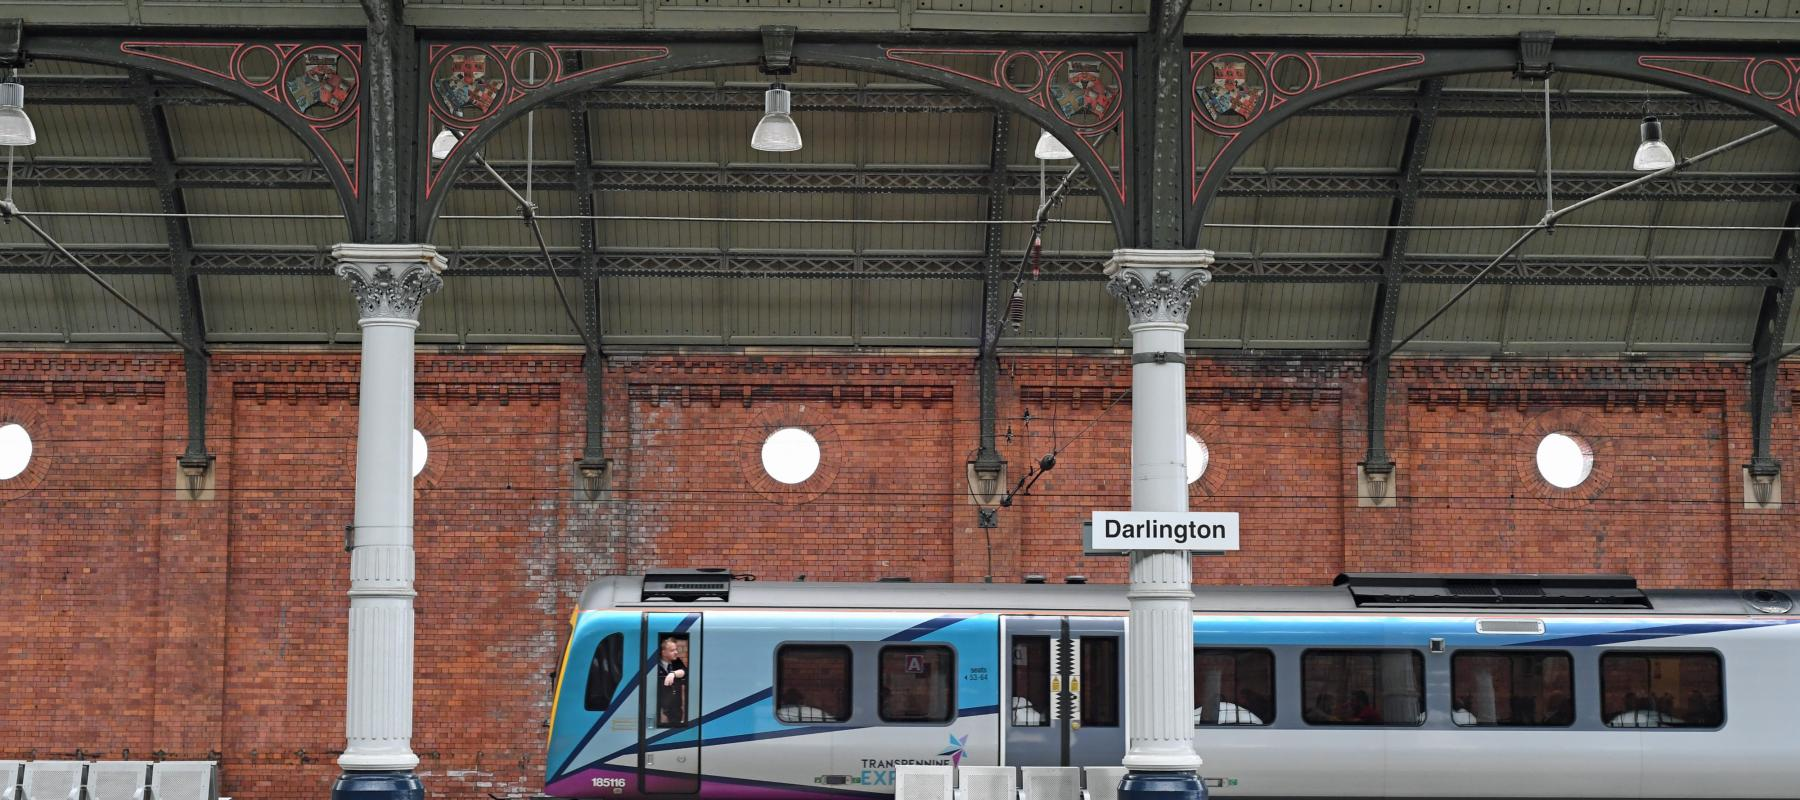 Darlington Railway Station with Trans Pennine Express train